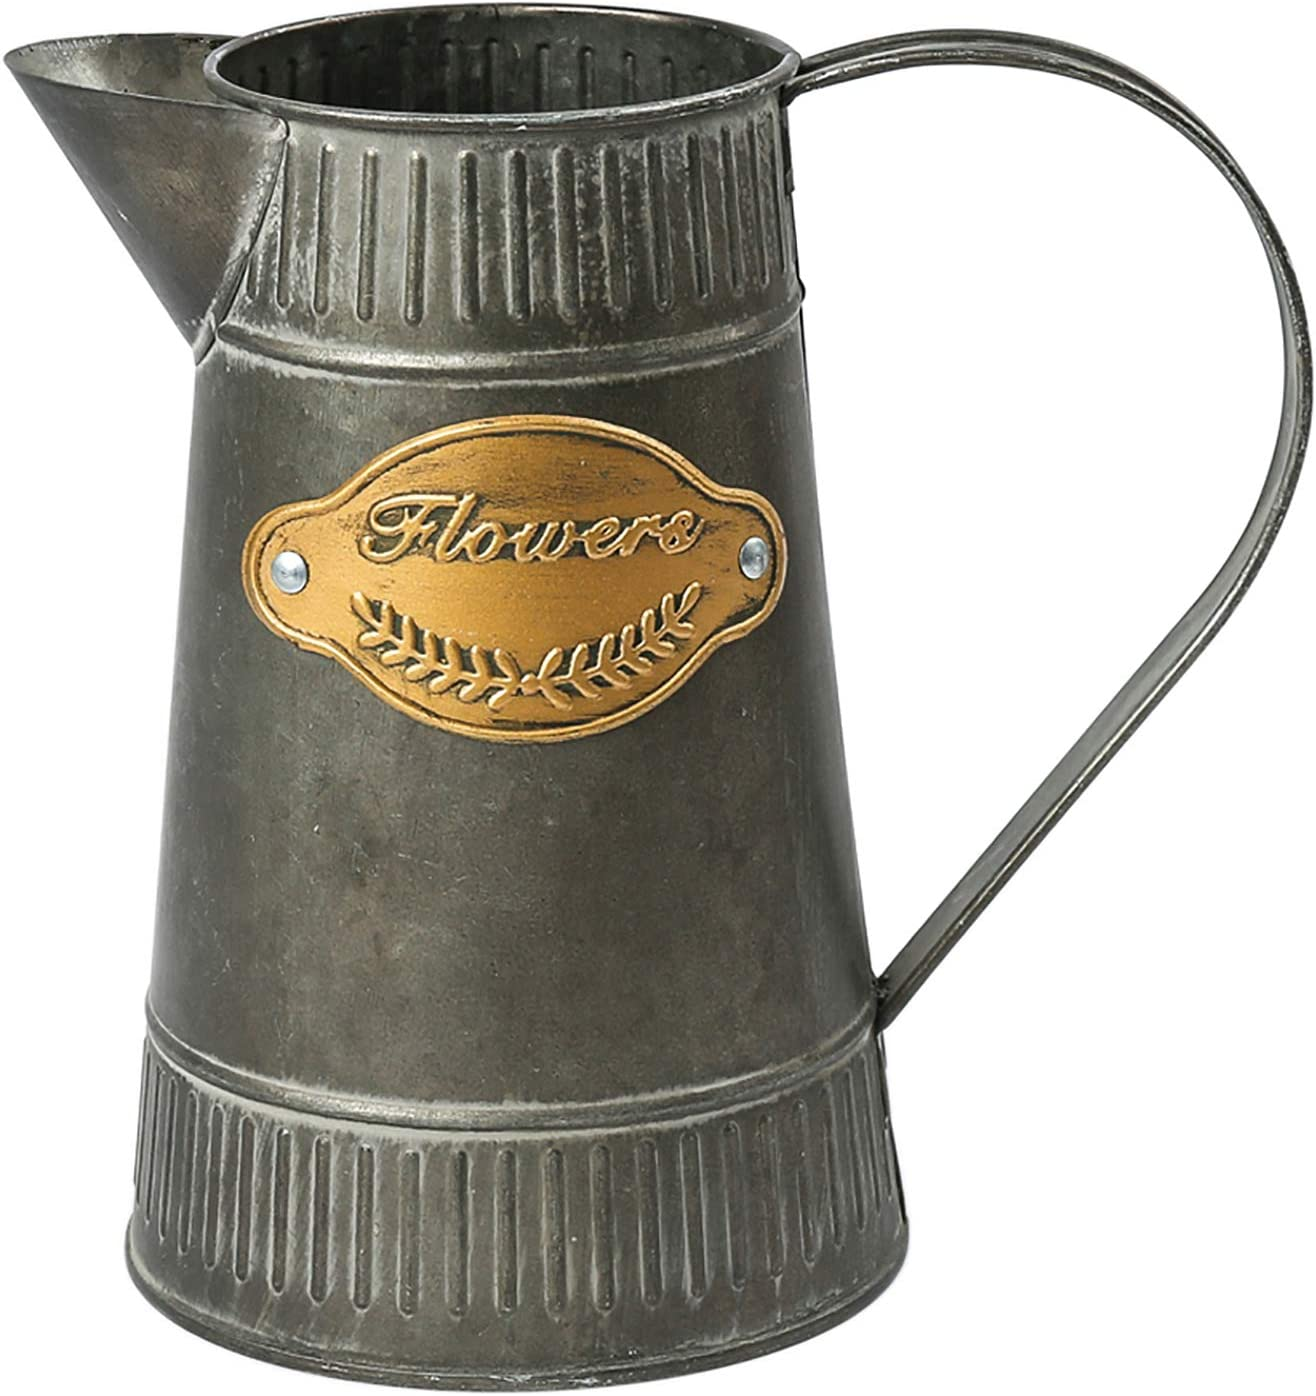 WHHOME Shabby Chic Watering Can Galvanized Finish Metal Vase Country Rustic Pitcher Primitive Jug Decorative Flower Holder, 7.2